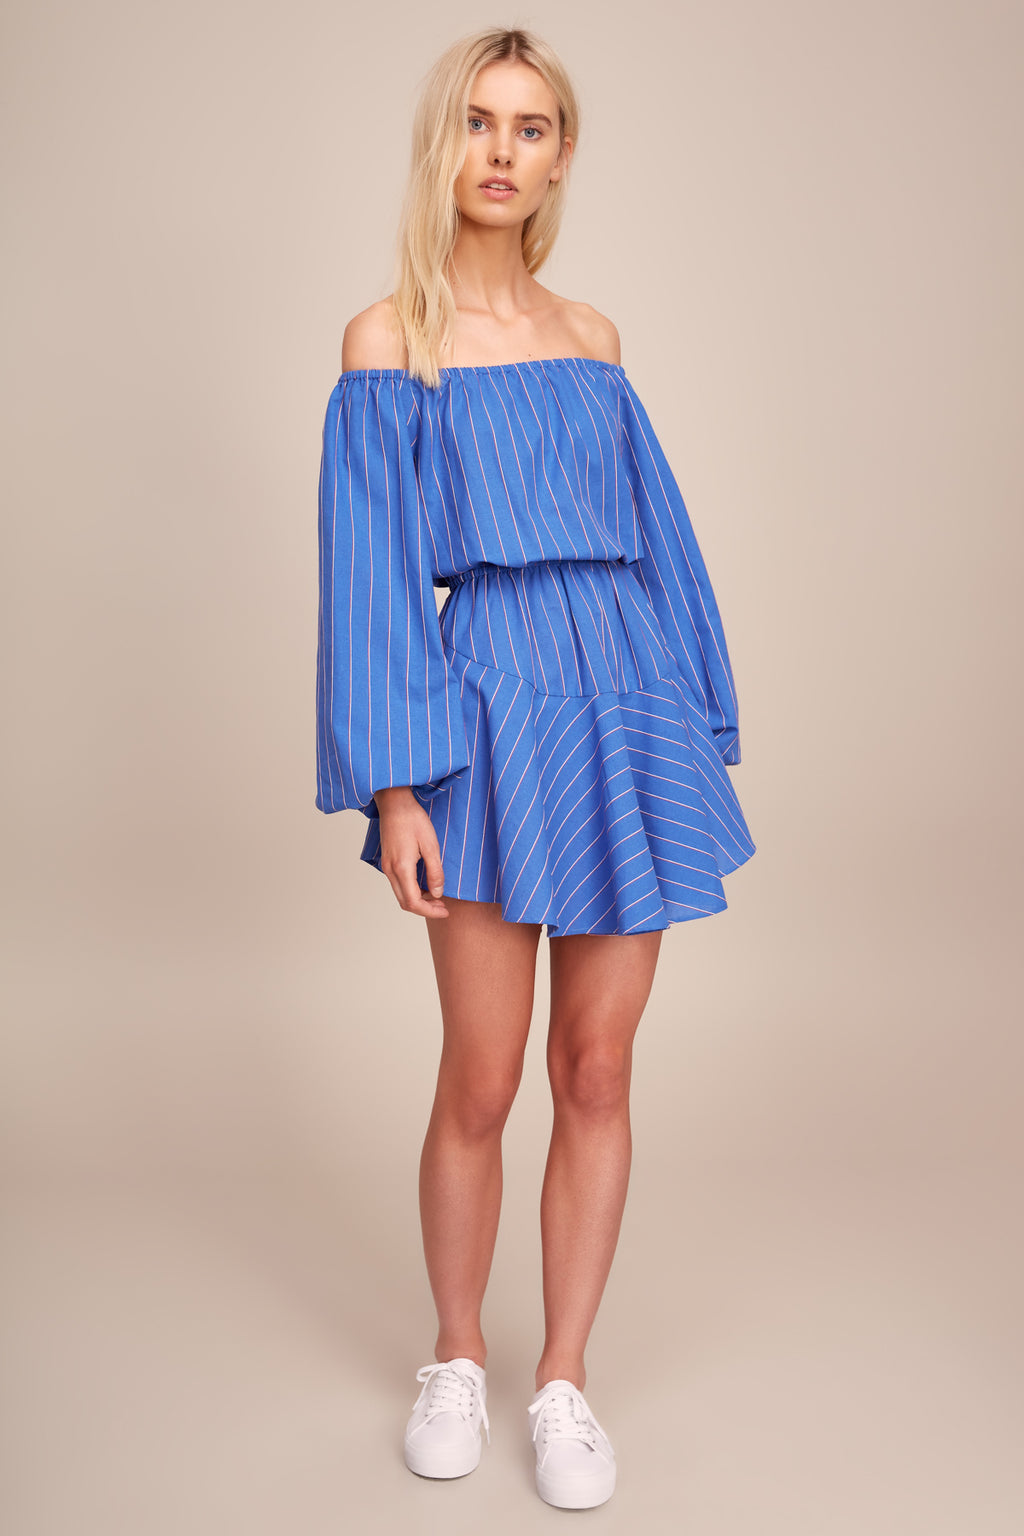 The Fifth Ray Strip Long Sleeve Dress in Blue with Red